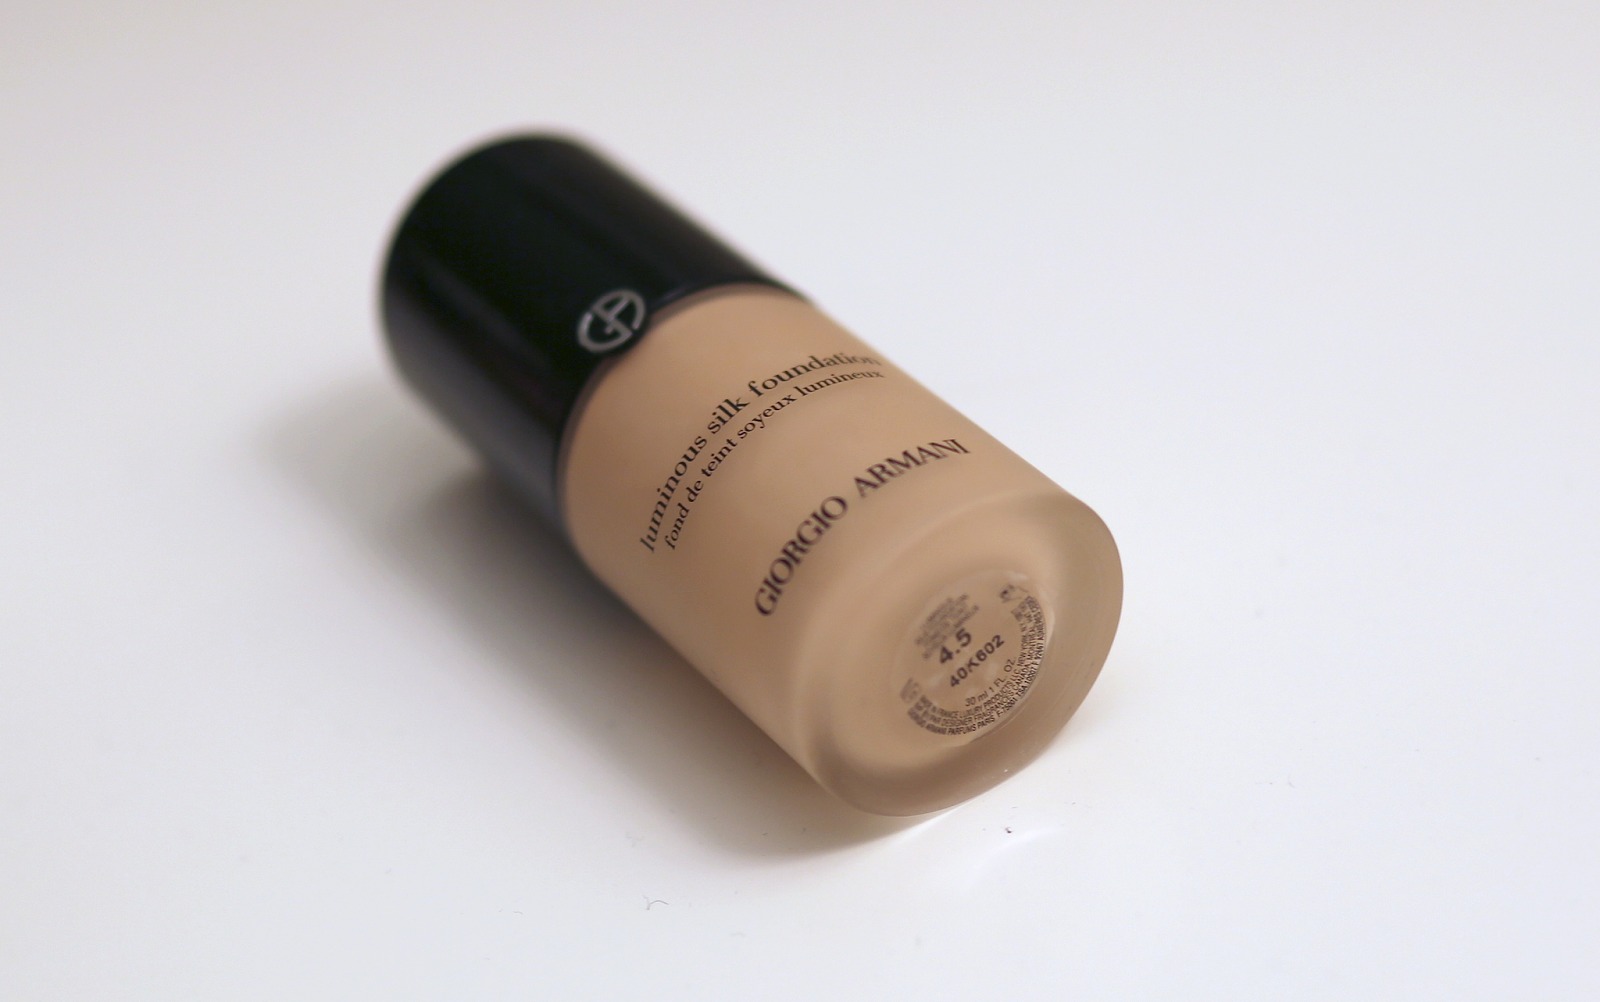 foundation, Giorgio Armani, hourglass, Koh Gen Do, laura mercier, Luminous Silk, primer, Real Techniques, review, serum, my thoughts on, my, thoughts, on, giorgio, armani, luminous, glow, silk, foundation, korean, powder, makeup, cosmetics, storage, review, dirty blonde ambition, dirty, blonde, ambition, lauren, zelner, lauren zelner, muji, acryllic, acrylic, plastic, clear, lucite, drawers, palette, special edition, special, edition, new, packaging, hype, popular, beauty community, most, worth the hype,